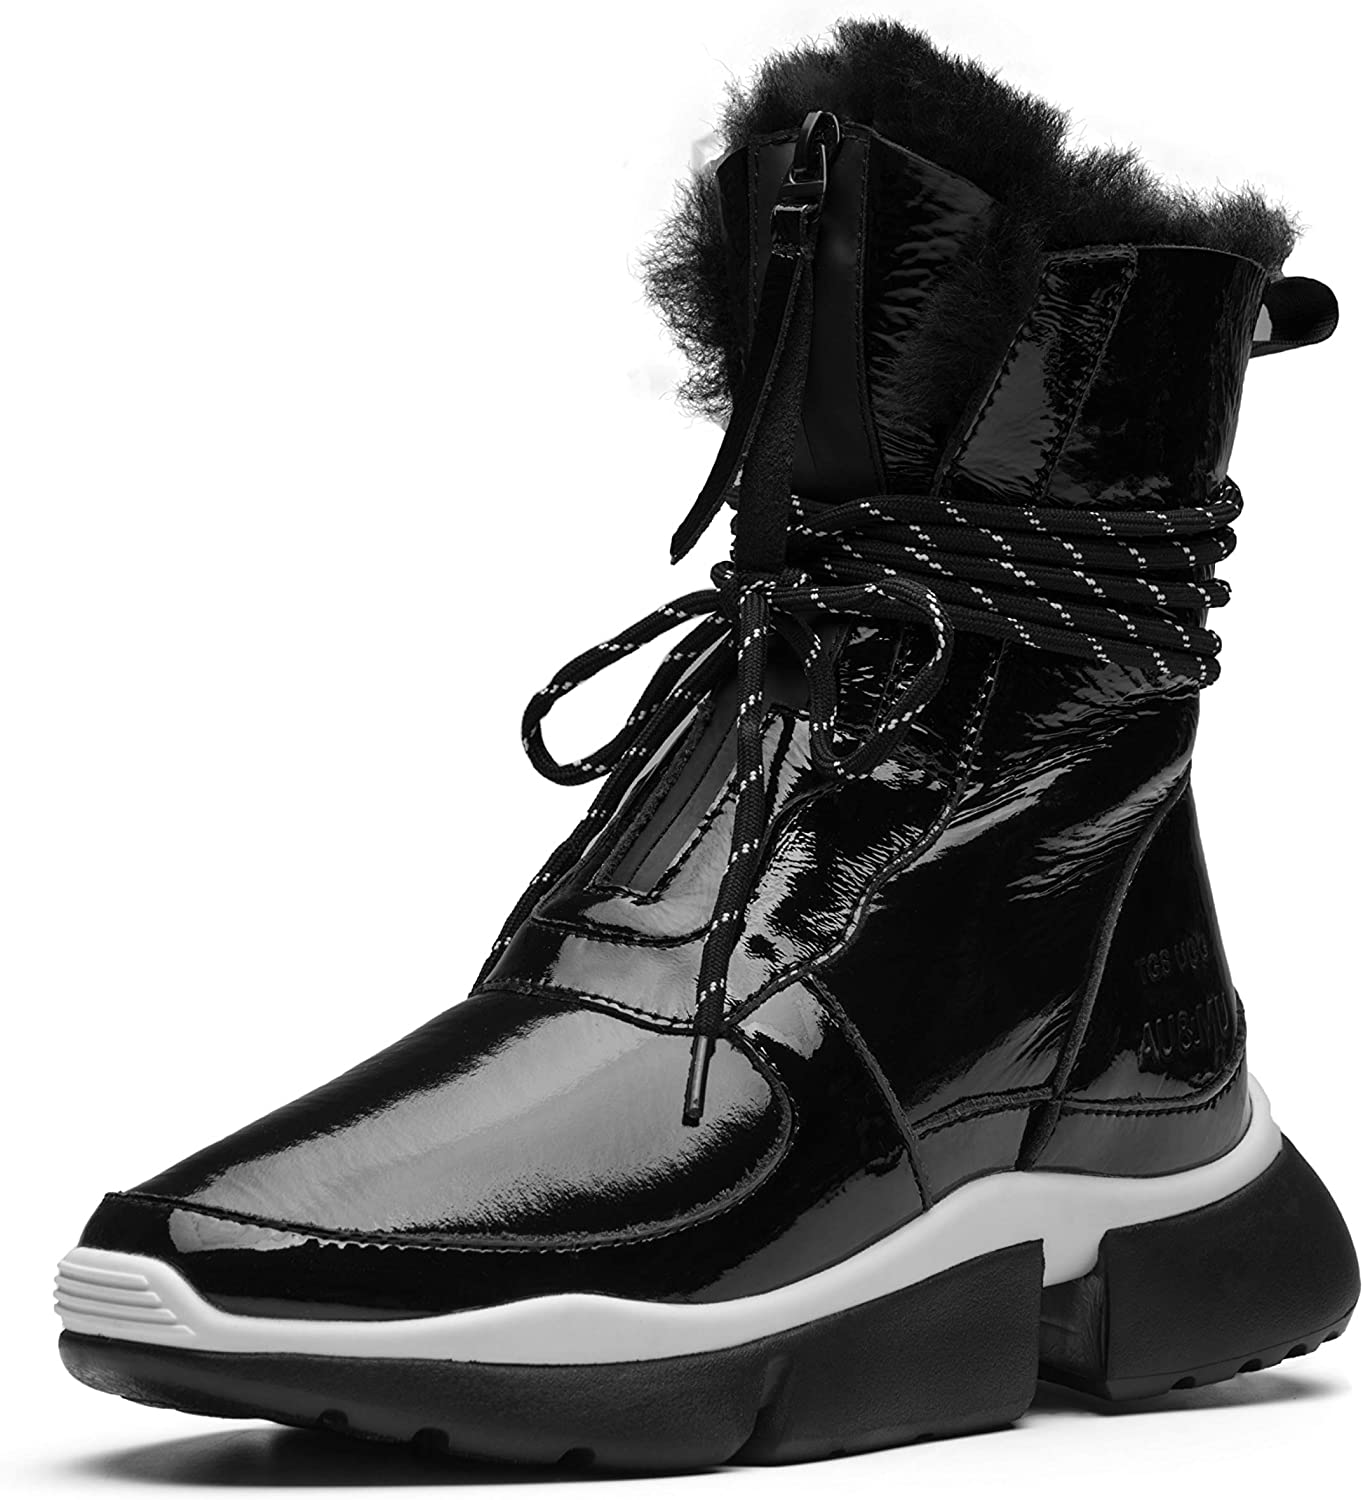 Aumu Patent Leather Feather Dress Upper Lace Band Elevator Hidden Heel Winter Snow Boots